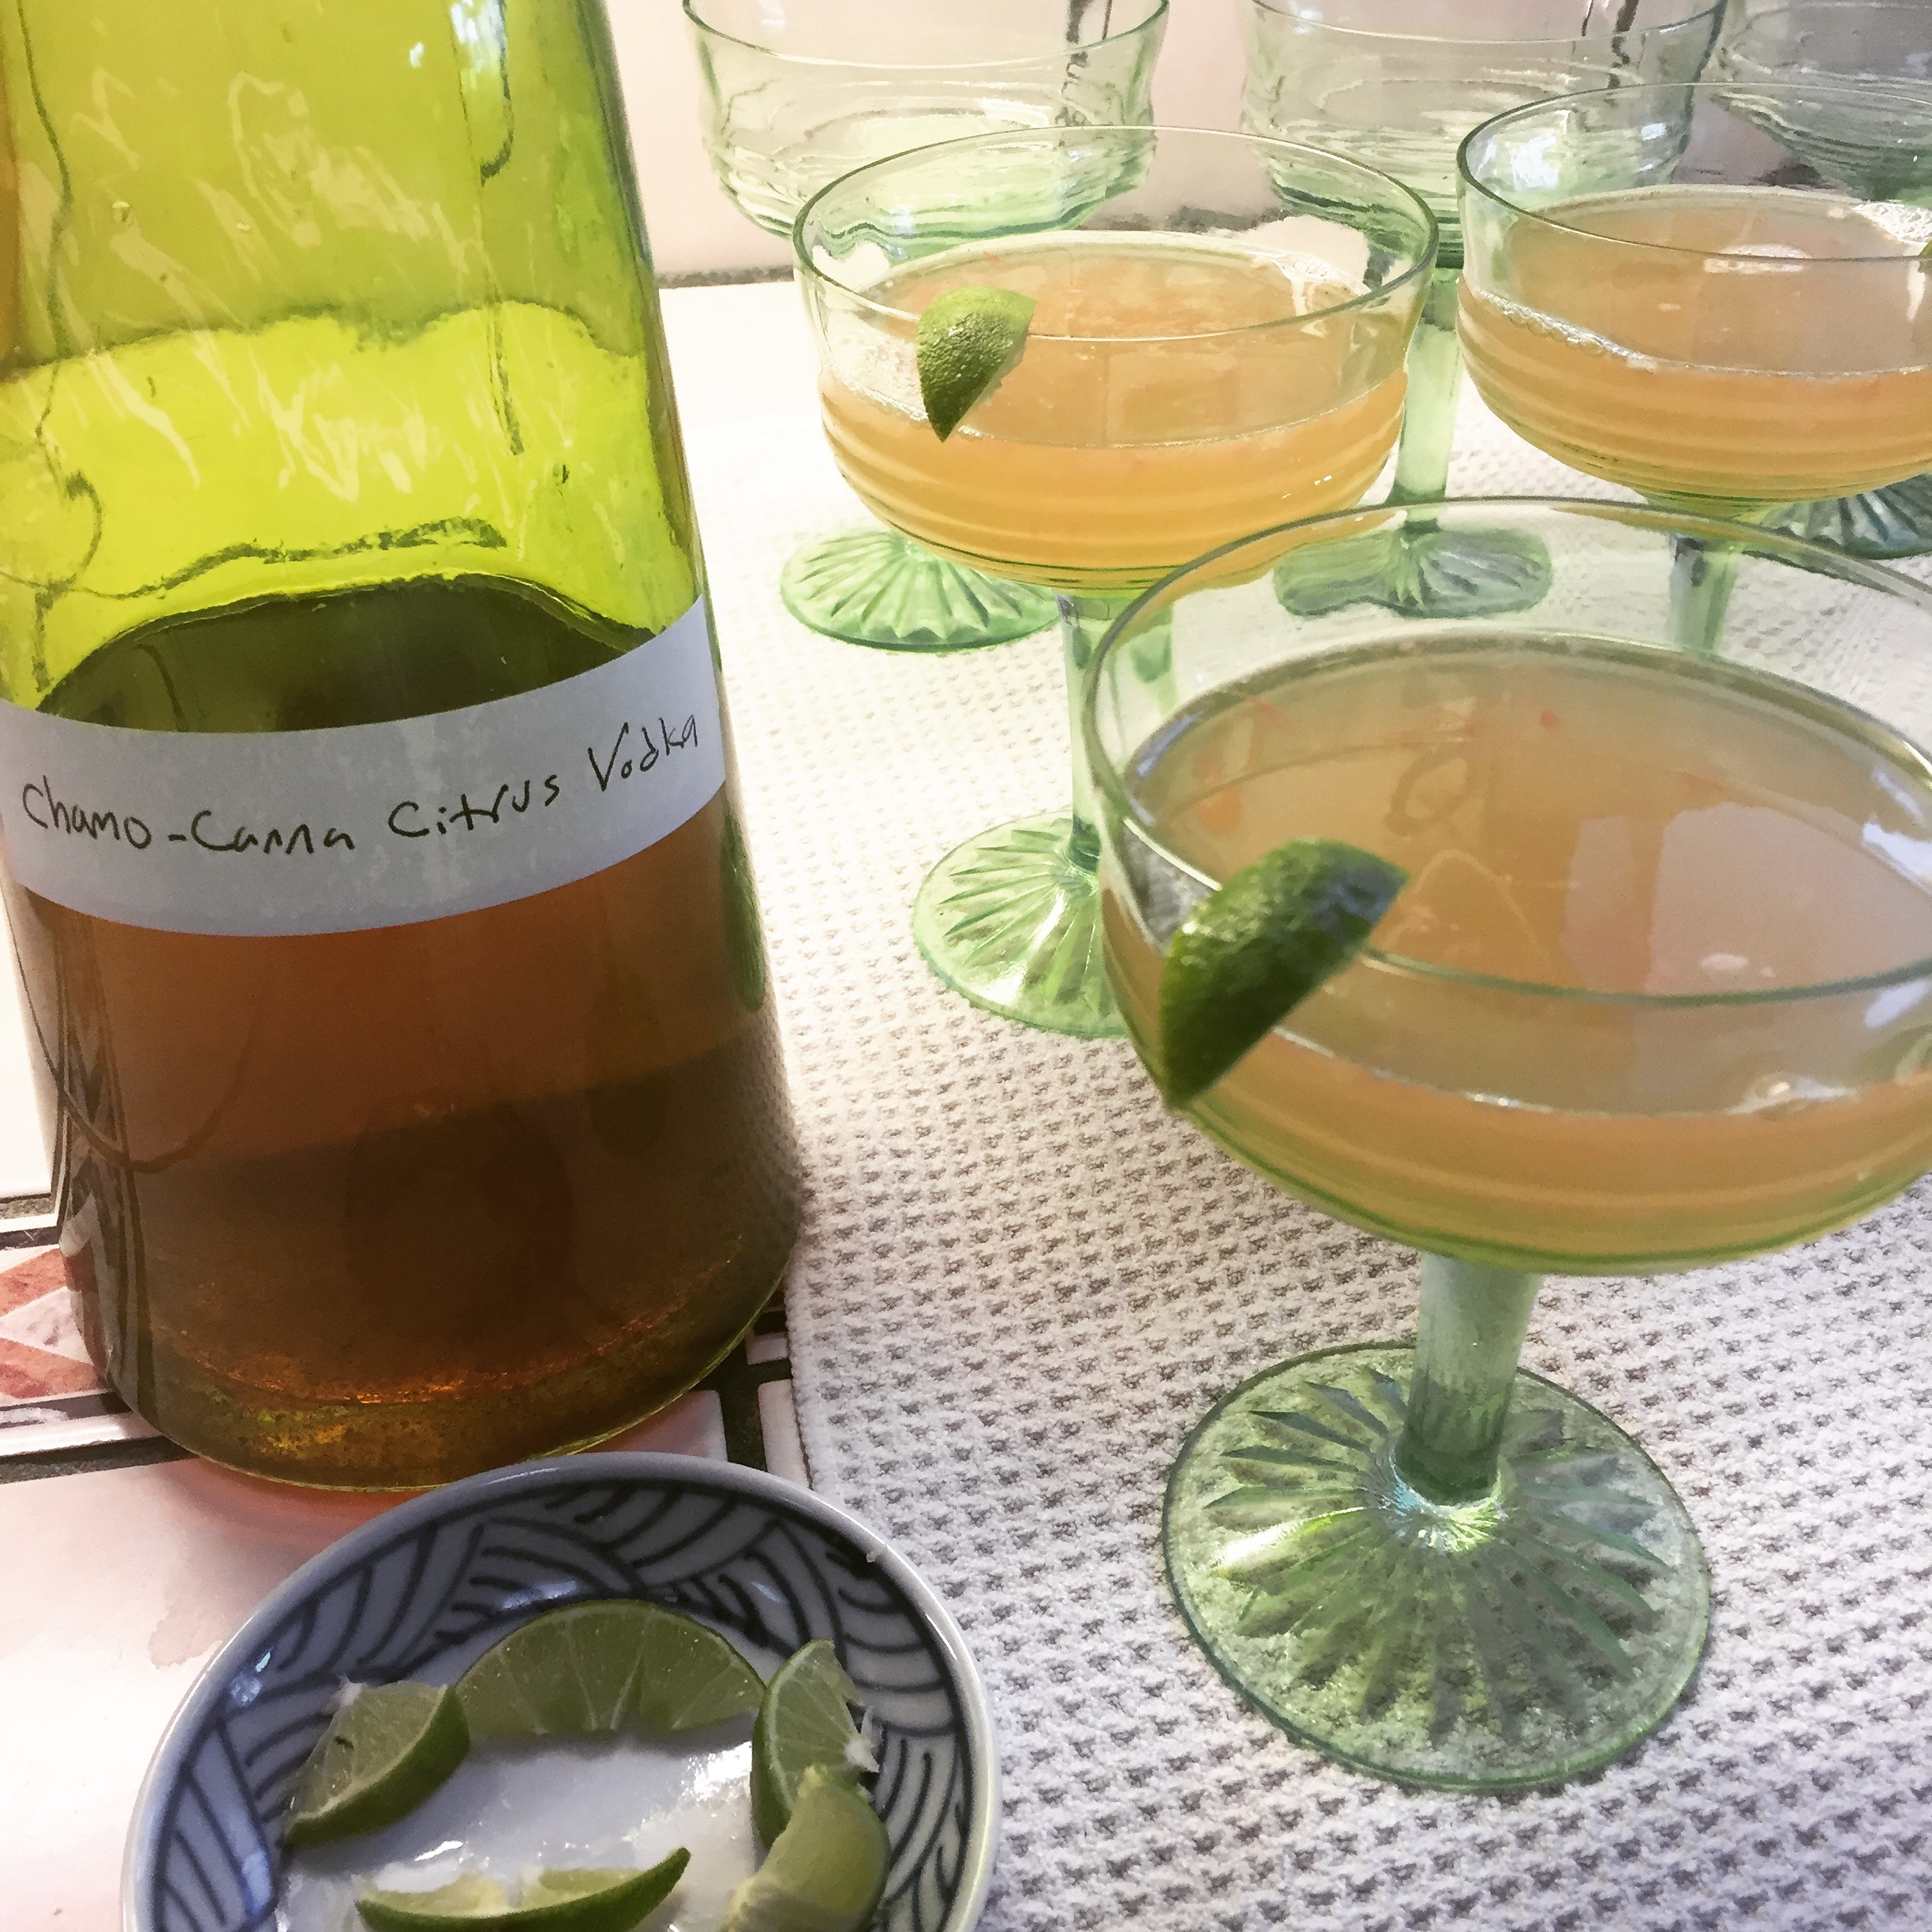 CalmingChamo Nightcap - 1 liter vodka; 1/4 c. whole chamomile flower;Citrus zest (orange, lemon, lime, grapefruit)Ganja Grapefruit Cocktail:1 shot vodka; Juice from one grapefruitFill with sparkling water or grapefruit sodaServe with a lime wedge, over ice.Note: Can also be infused w/cannabis, or half cannabis/half chamomile (as shown).